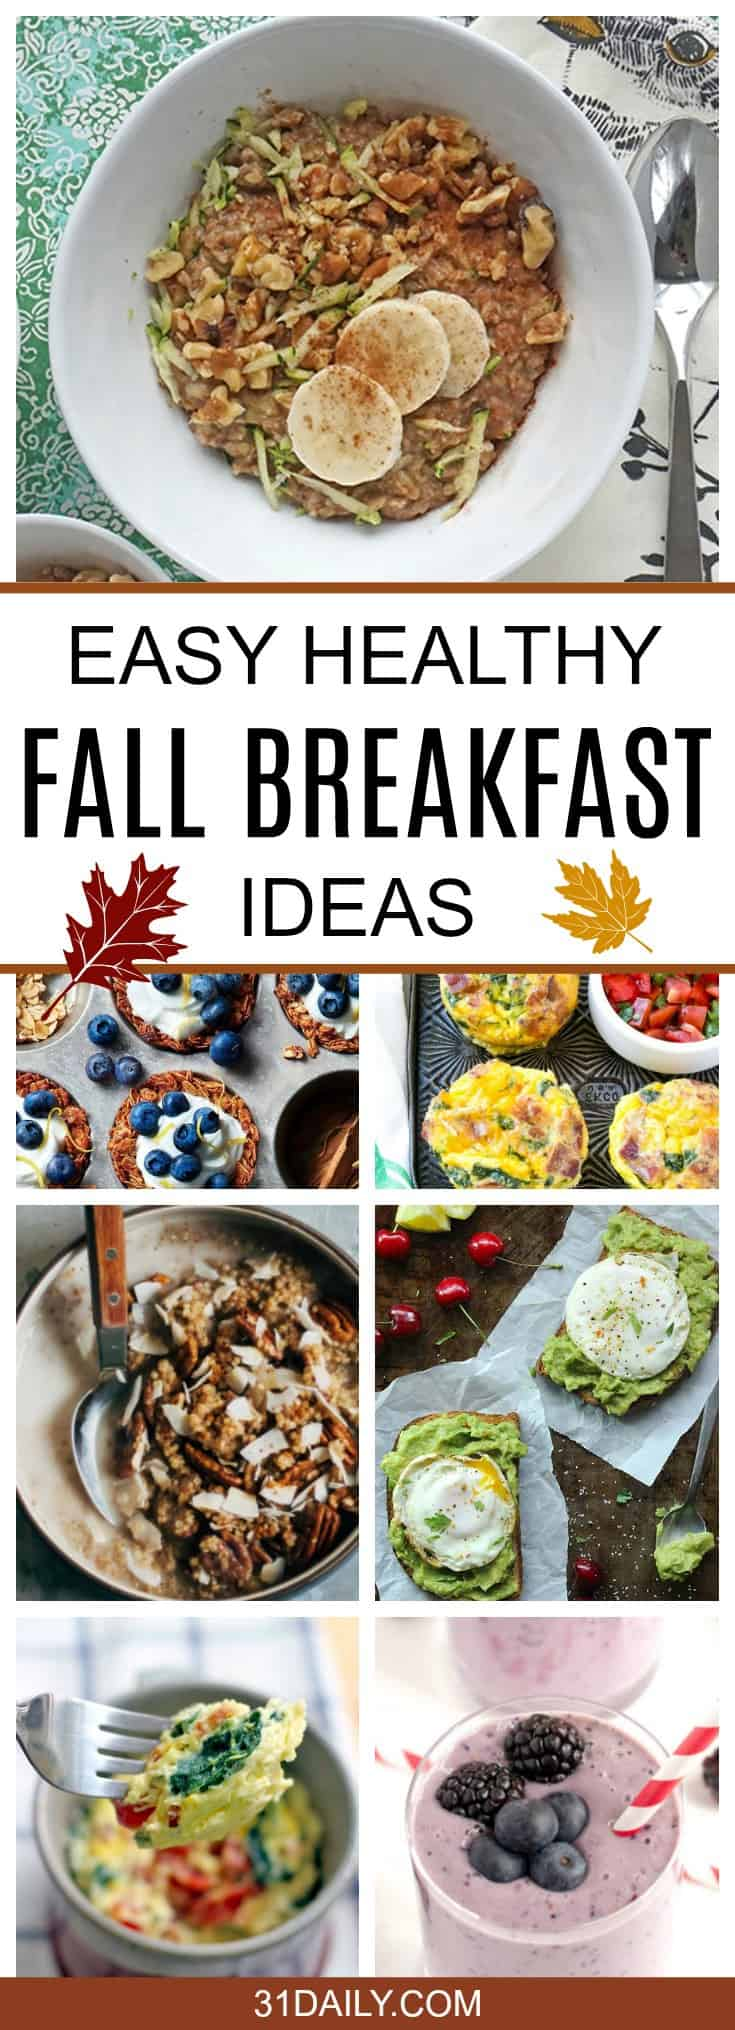 Easy and Healthy Fall Breakfast Ideas | 31Daily.com